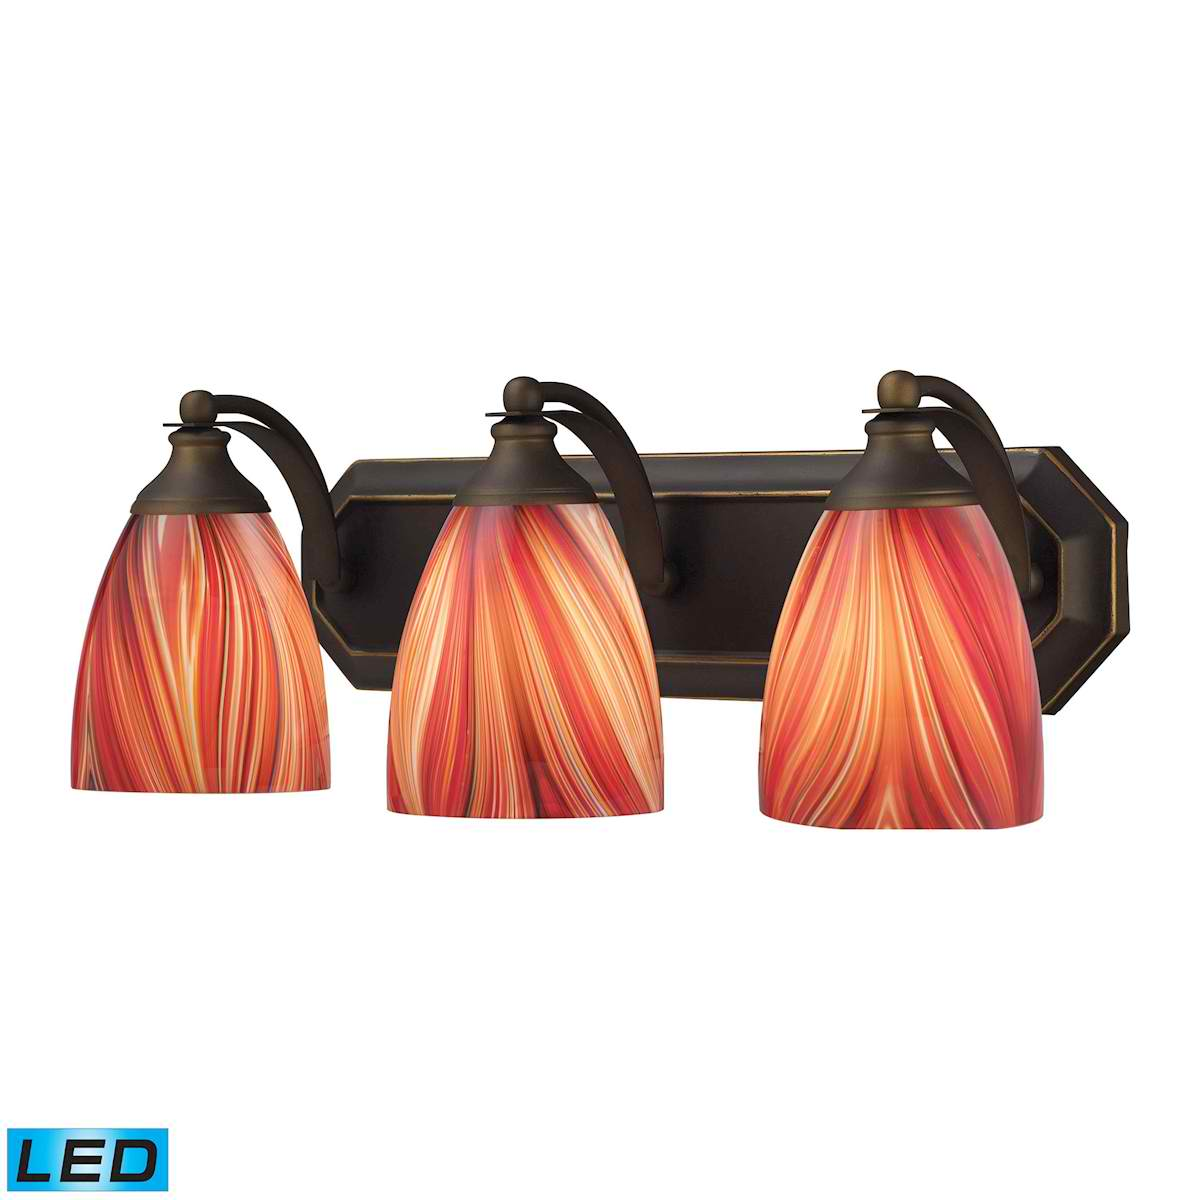 3 Light Vanity in Aged Bronze and Multi Glass - LED, 800 Lumens (2400 Lumens Total) with Full Scale